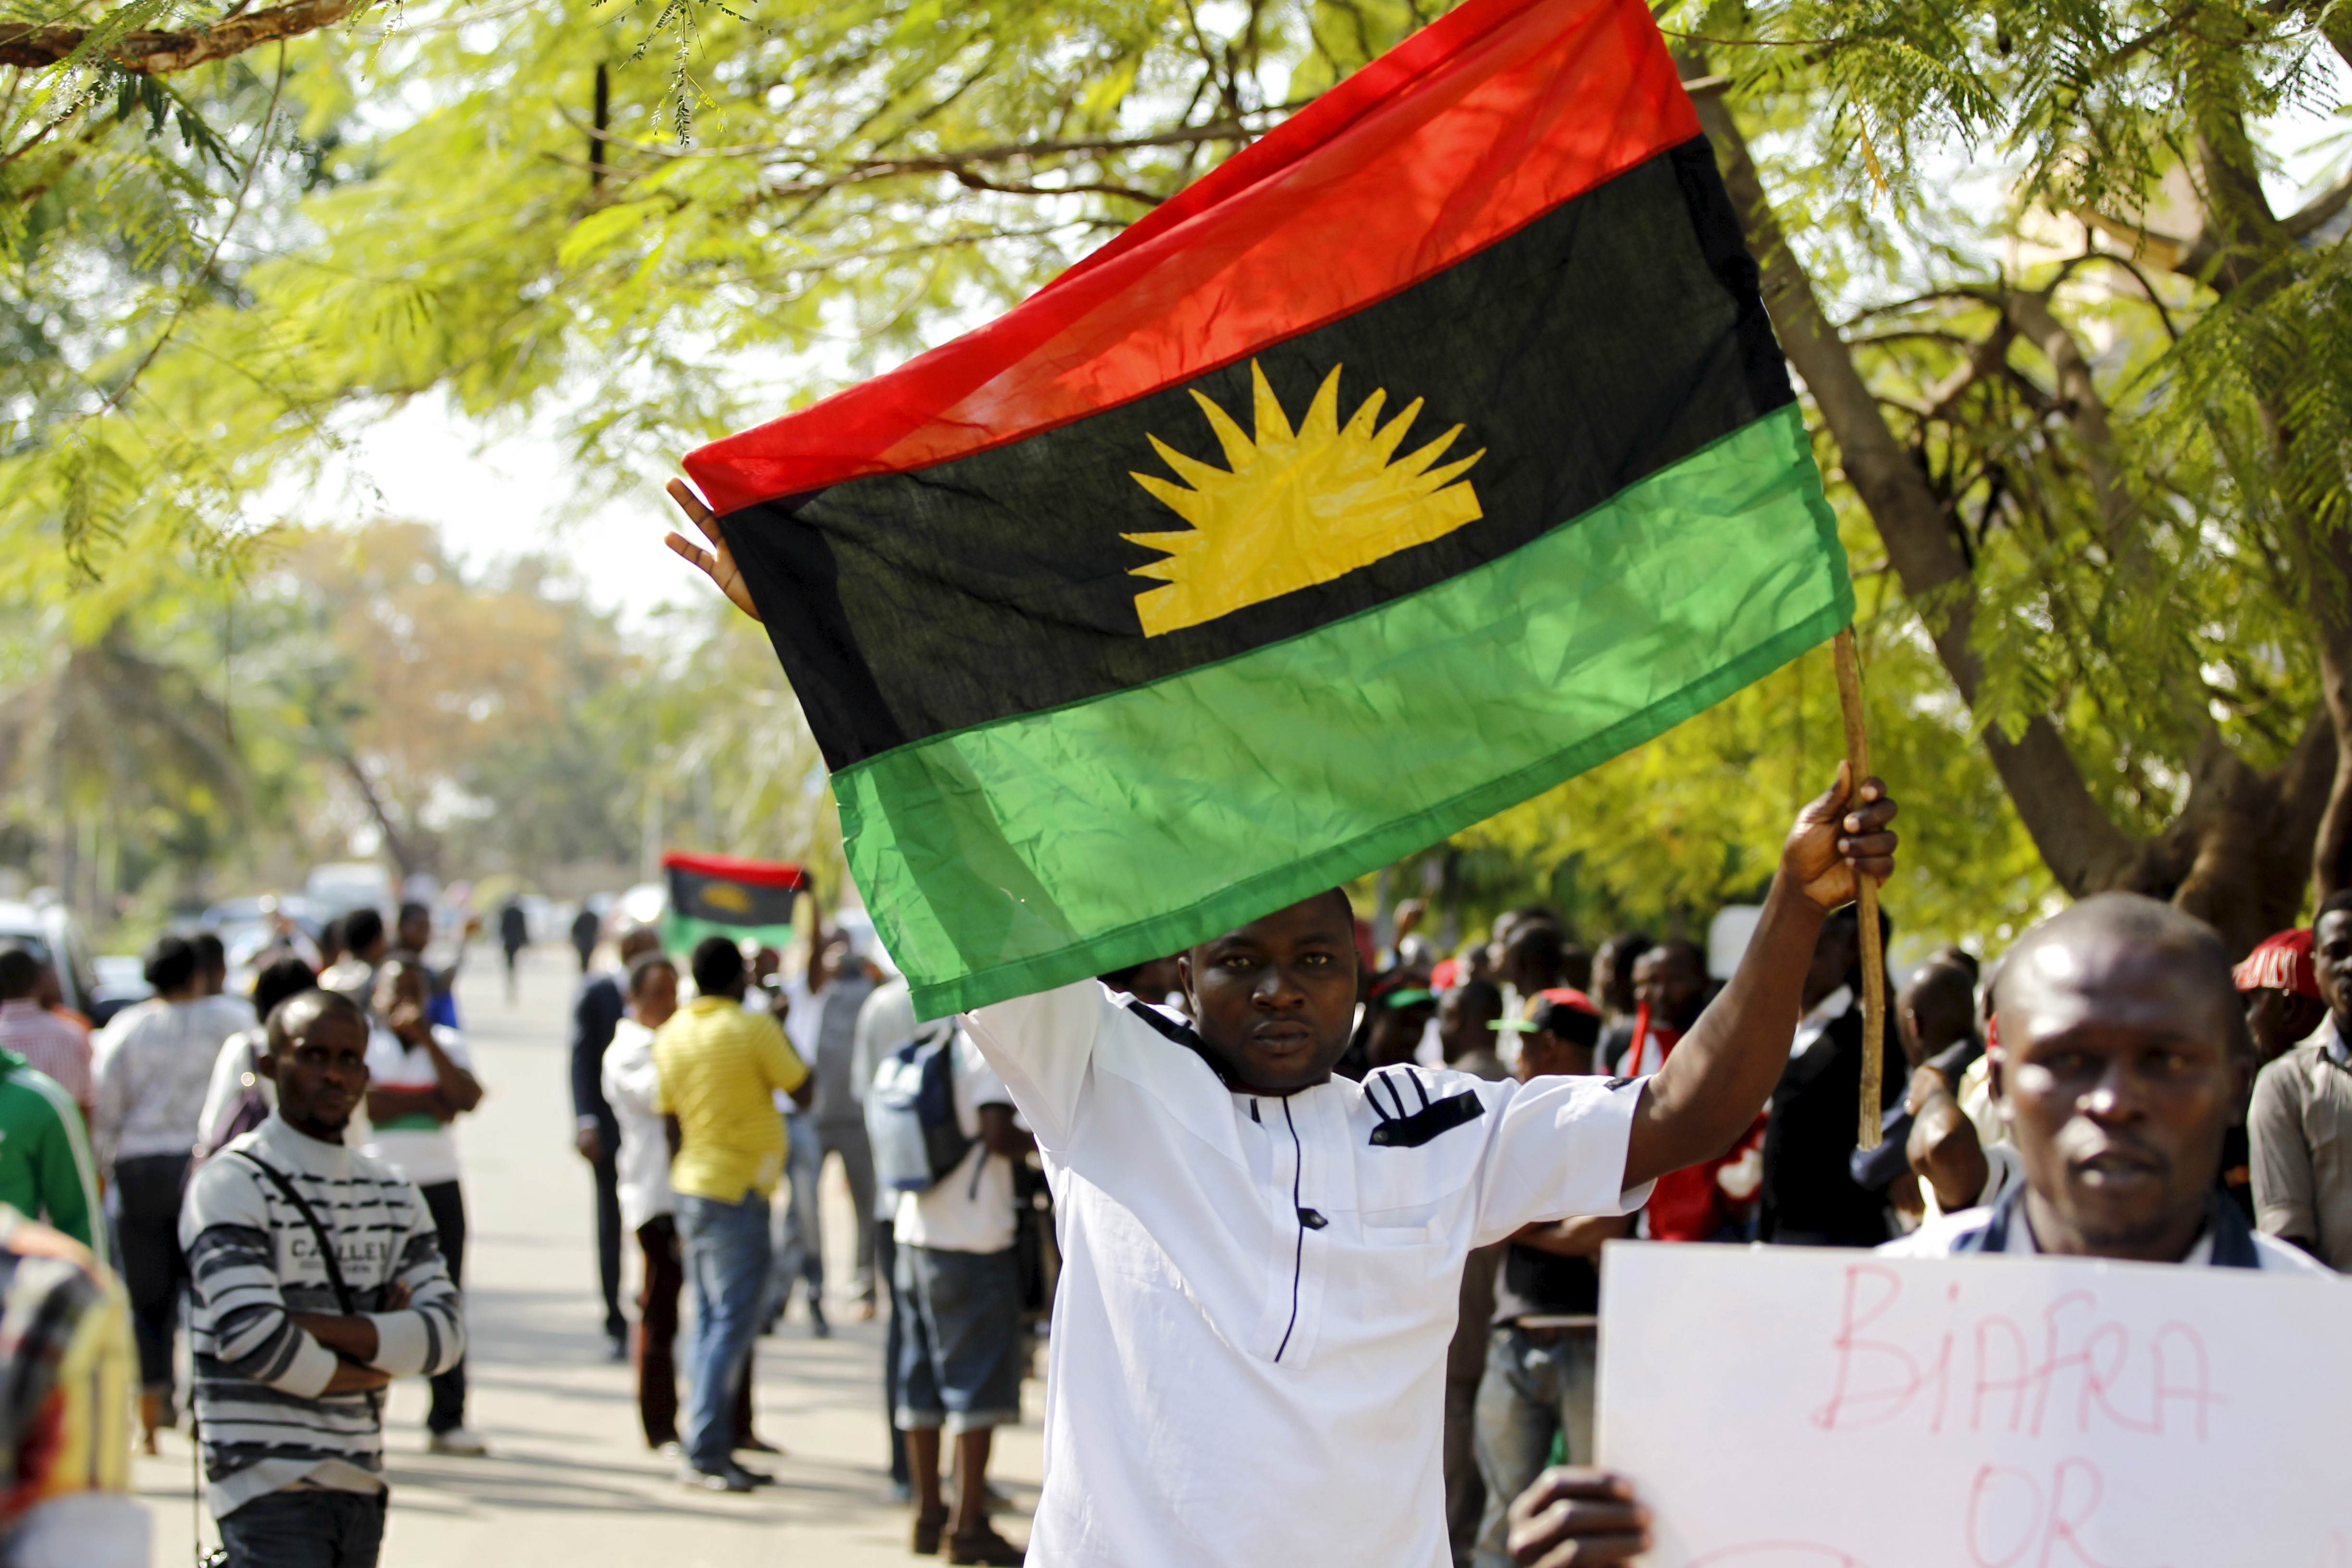 Army arrests IPOB members in Abia for disrupting church service